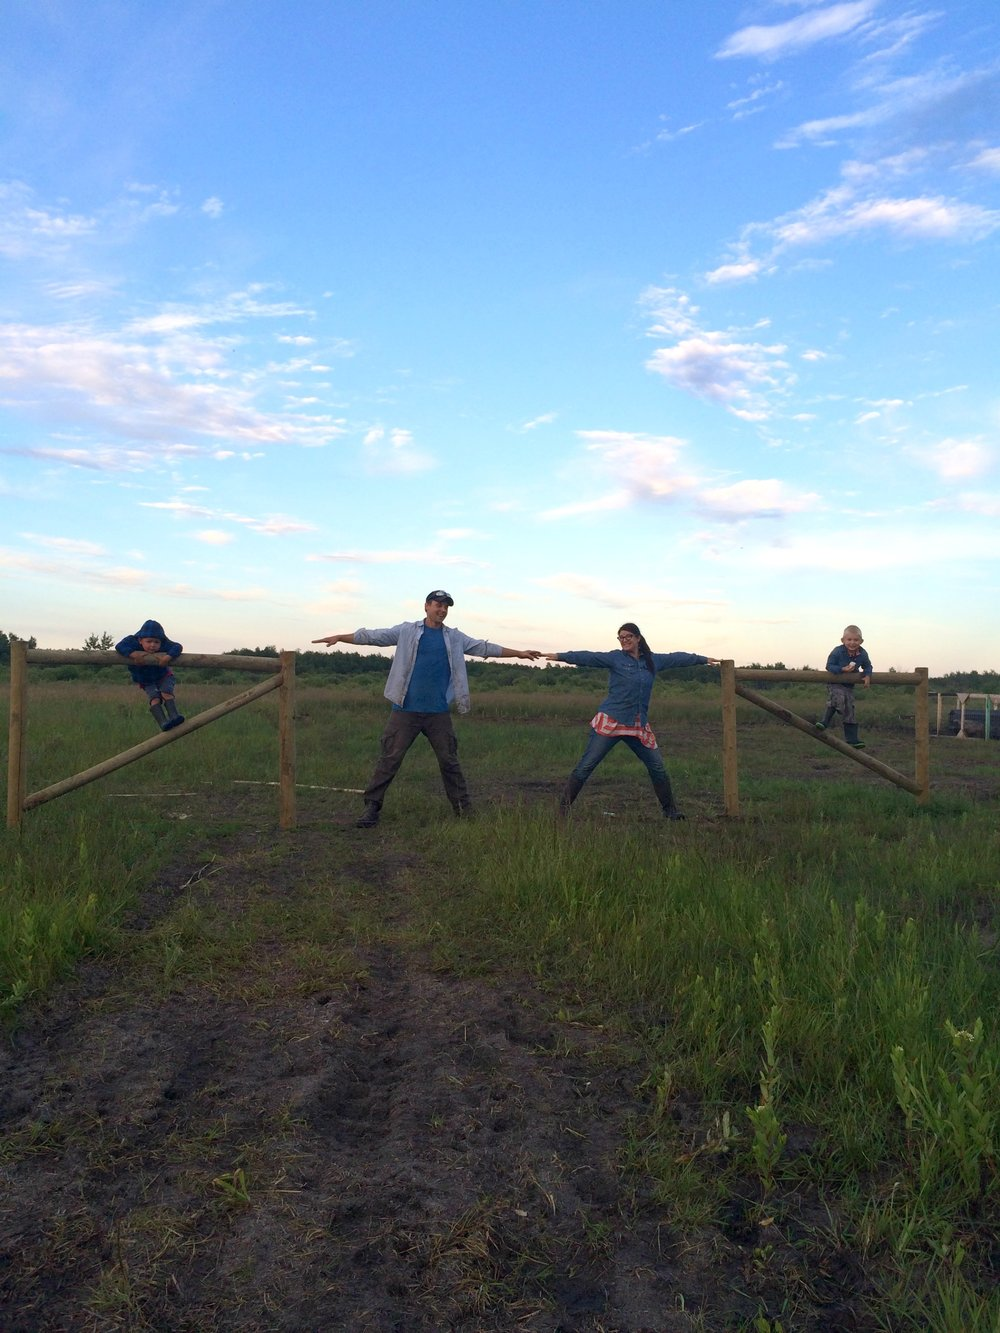 We were all pretty excited to finish the pasture fence!